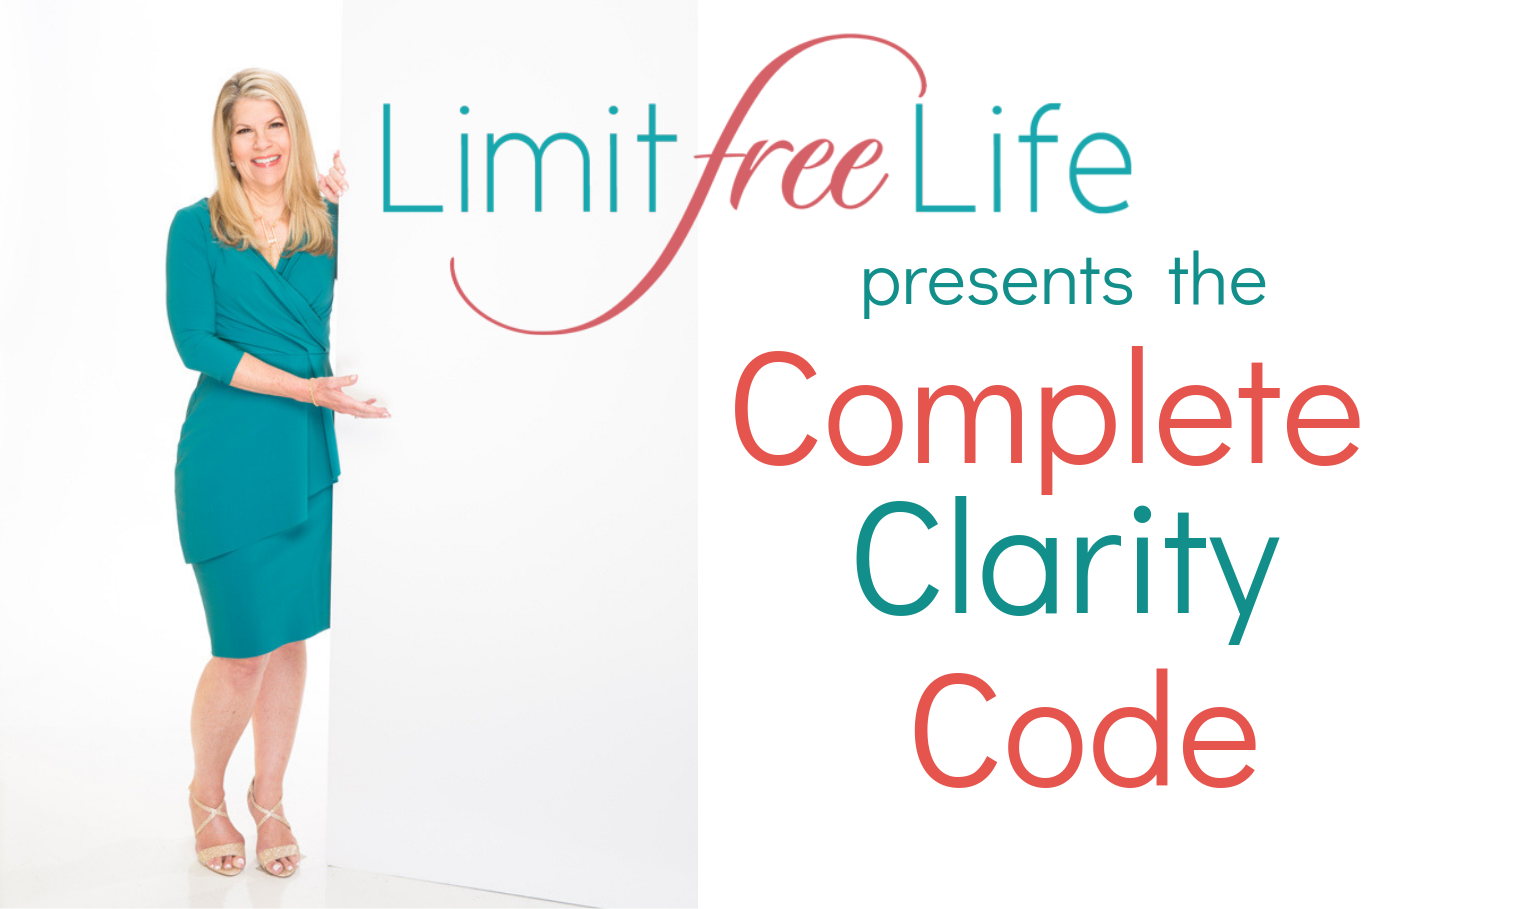 Complete Clarity Code